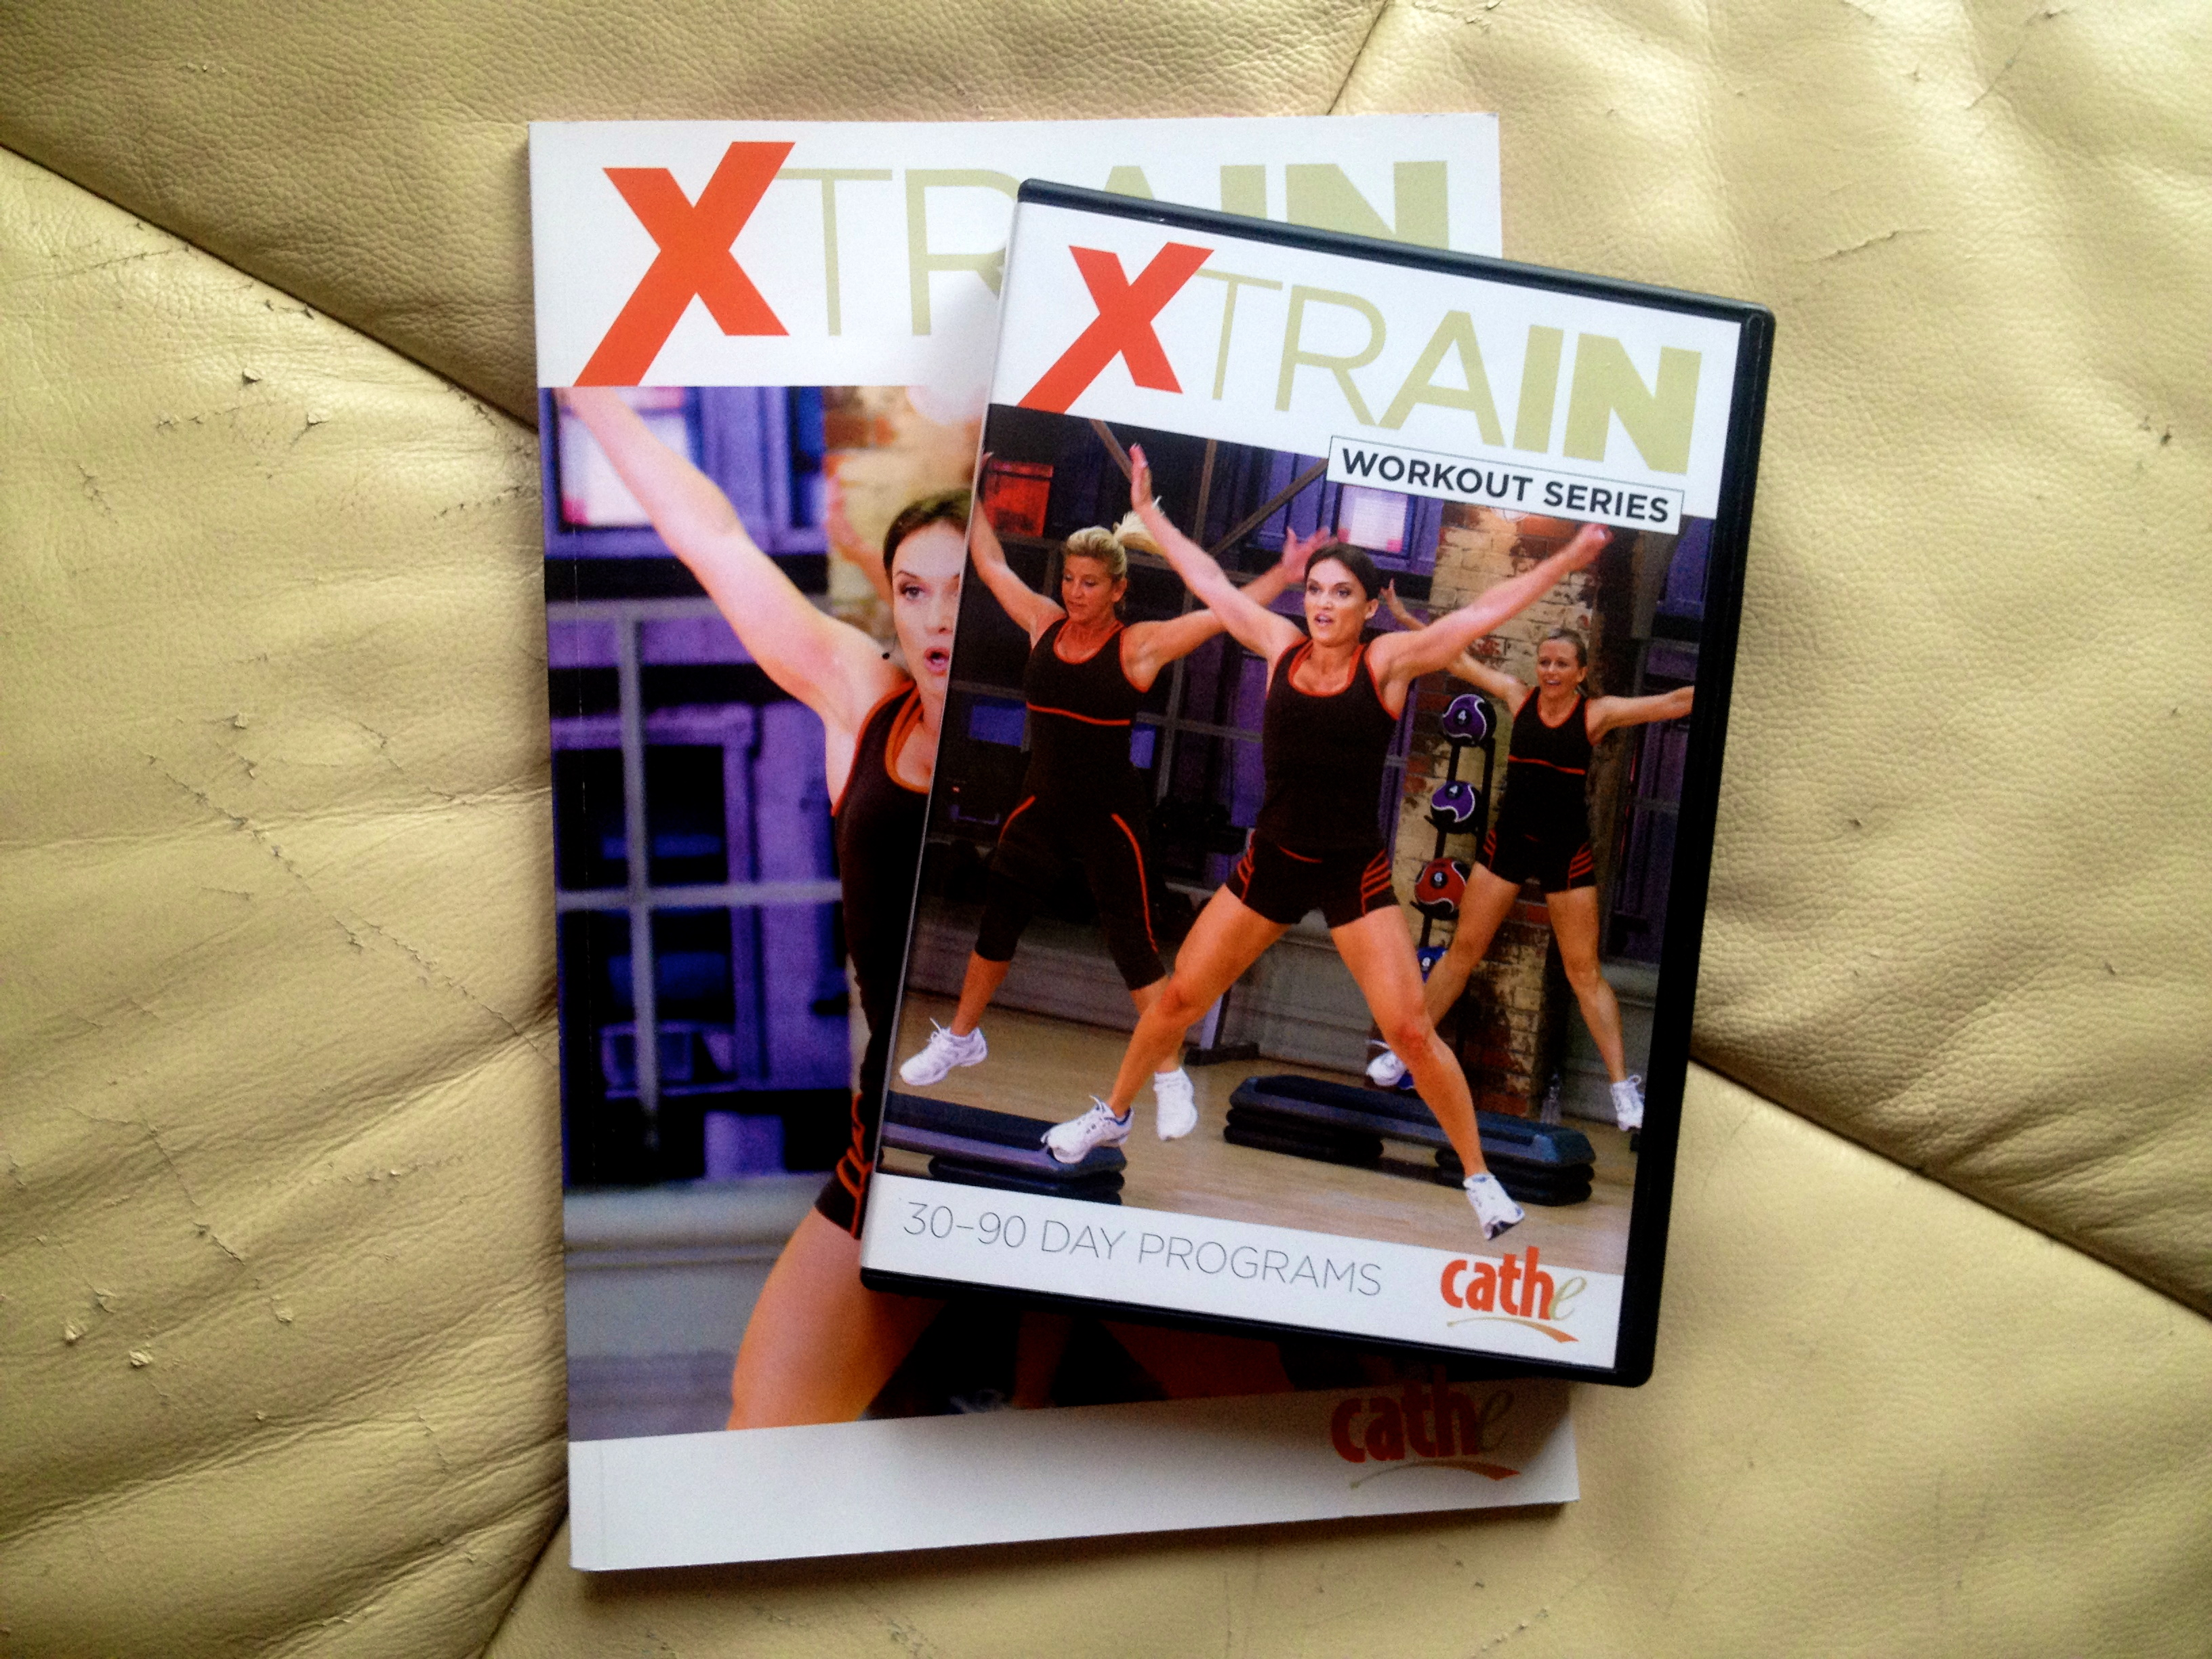 cathe Xtrain workout DVD